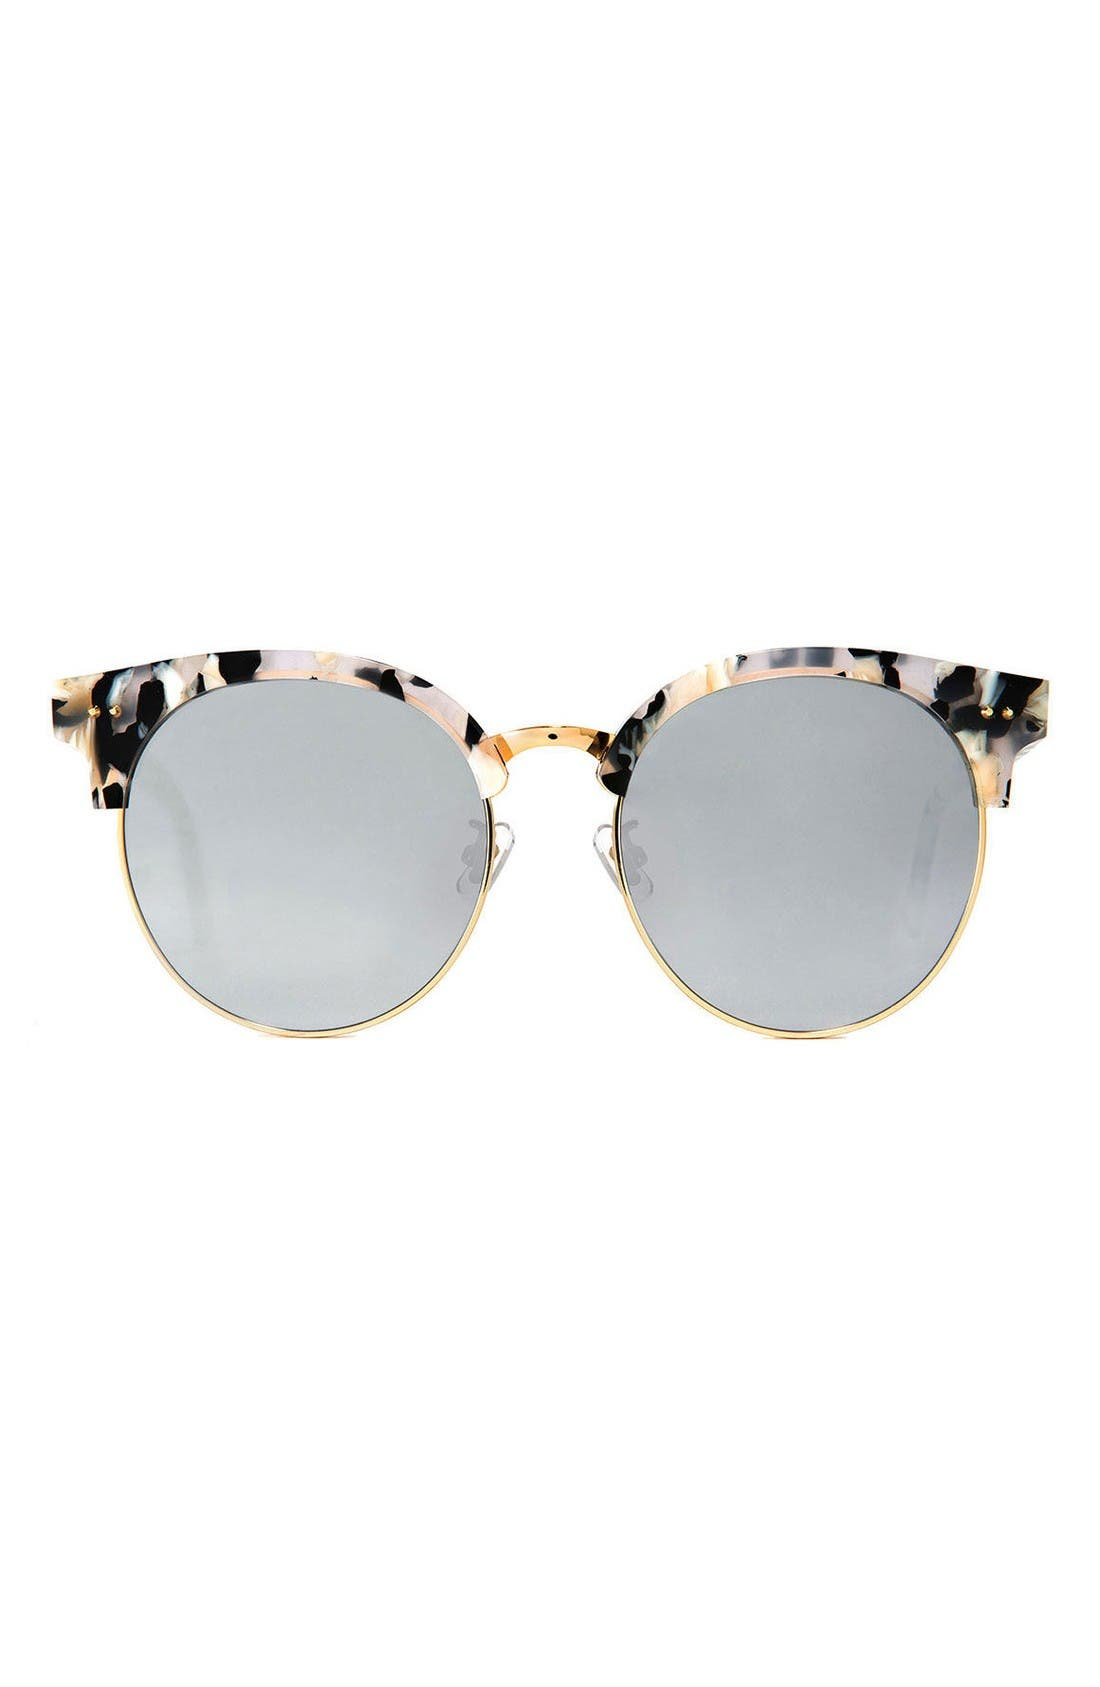 GENTLE MONSTER Moon Cut 55mm Sunglasses